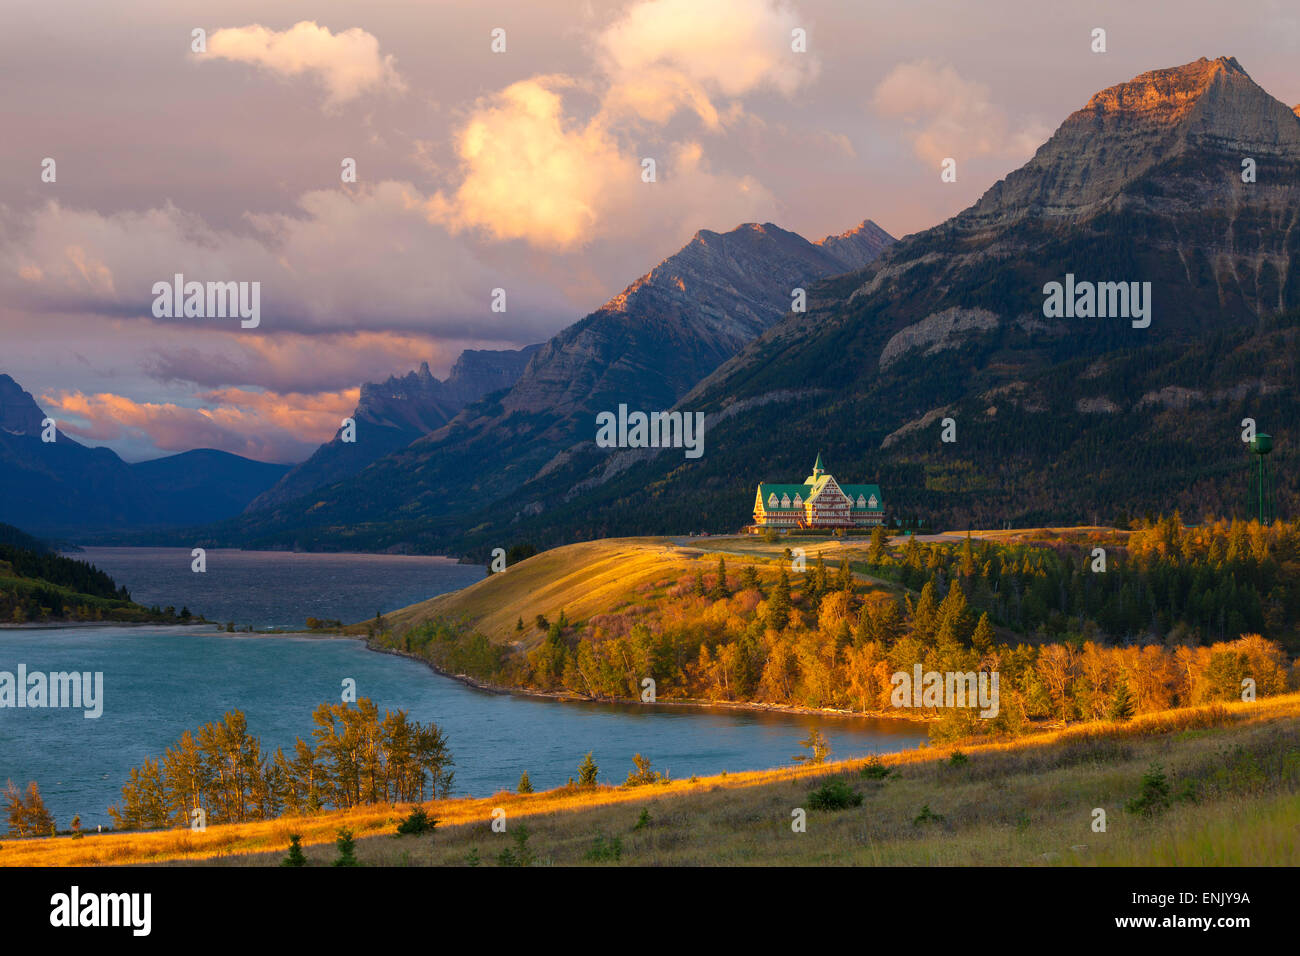 Lhotel Prince Wales Au Lever Du Soleil Waterton Lakes National Park Alberta Canada Amerique Nord Photos Images Alamy